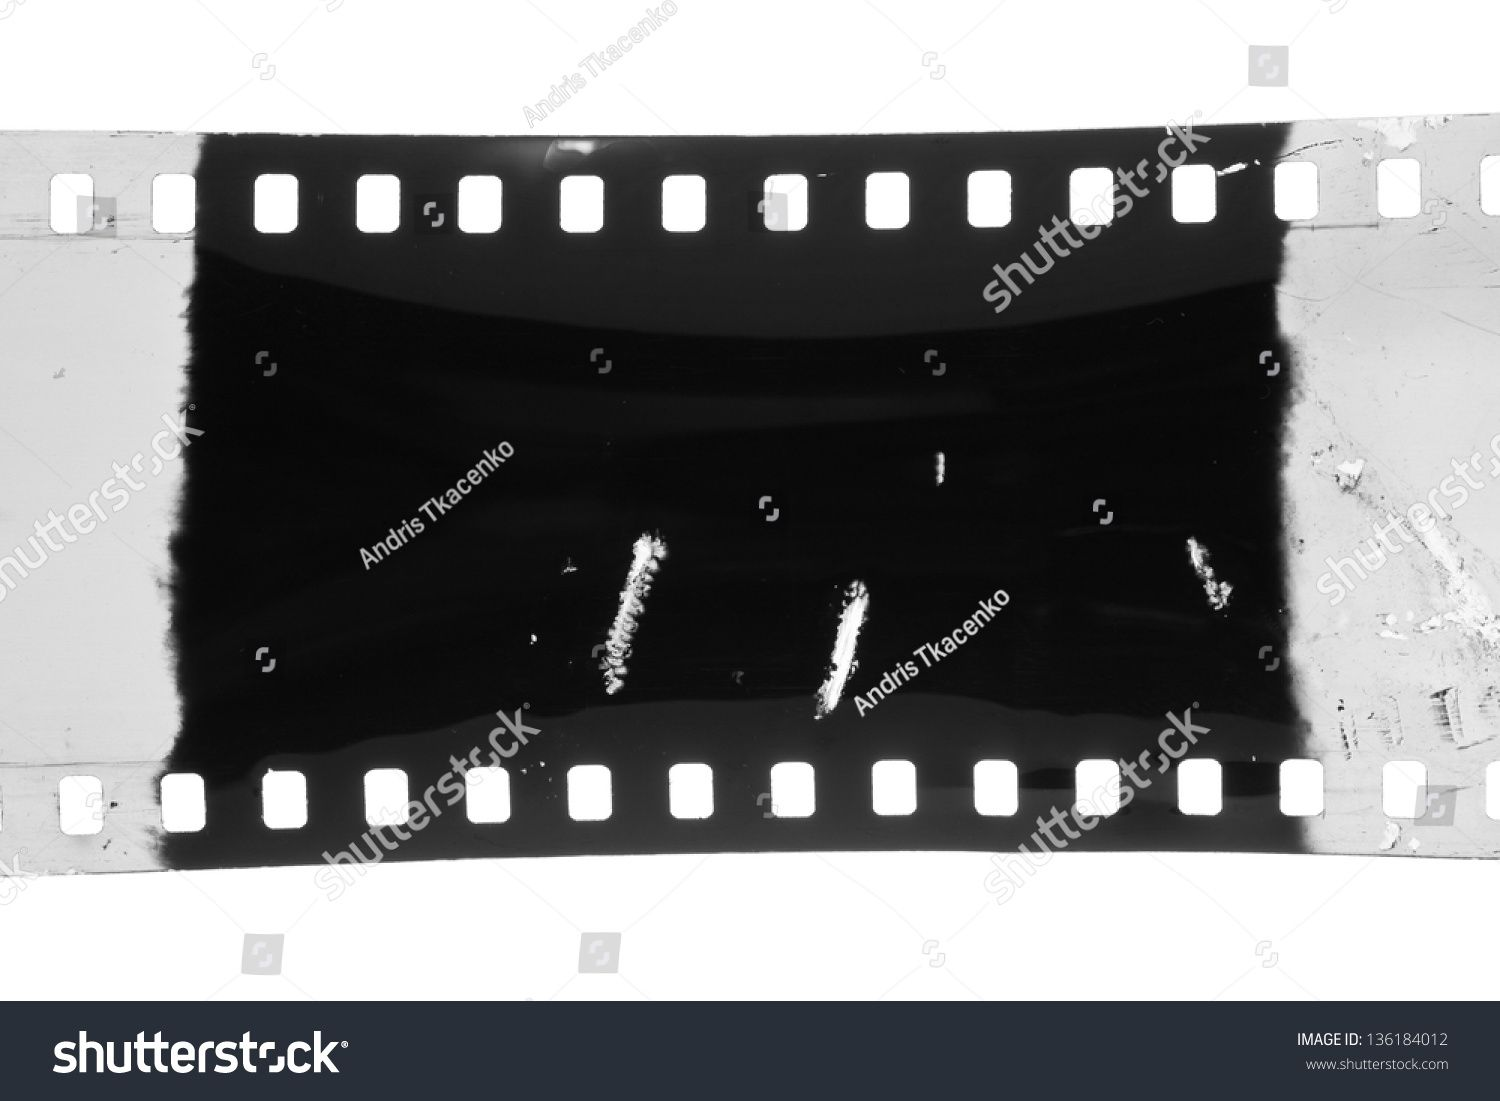 a strip of bw 35mm film isolated on white background may use as a background ad ad mm strip bw white in 2020 35mm film photo editing stock photos pinterest